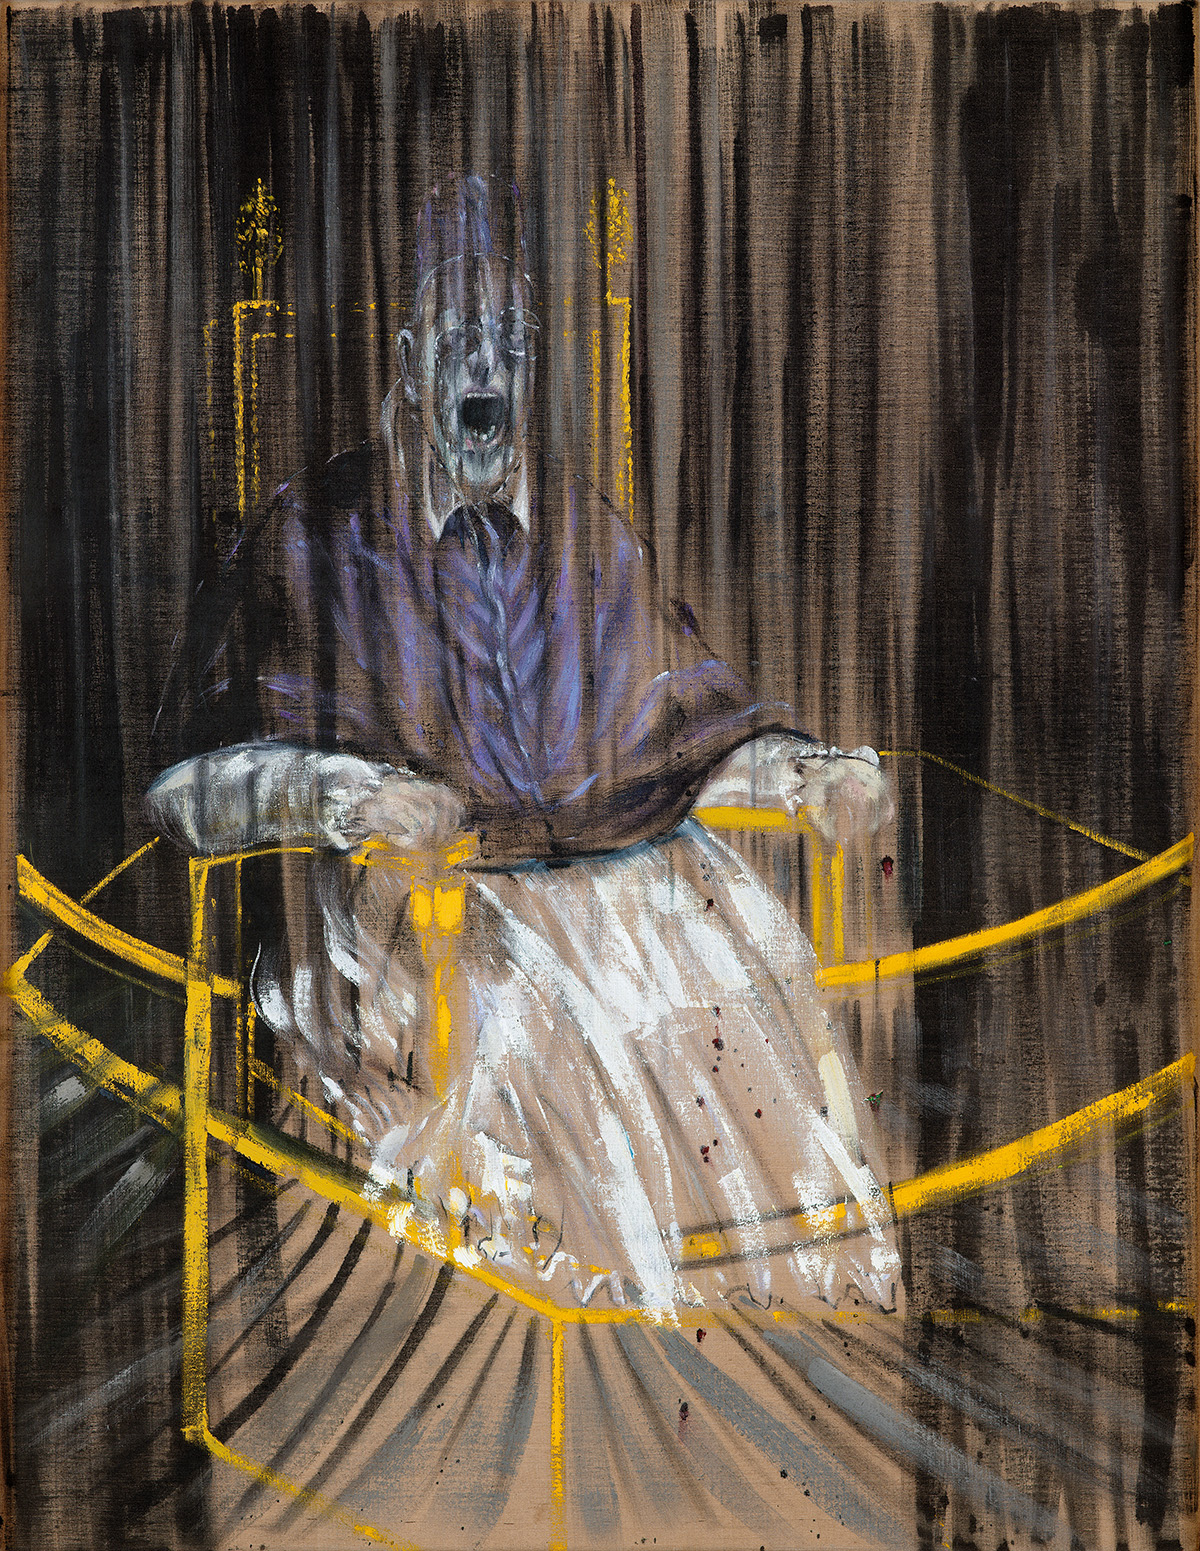 Francis Bacon, Study After Velázquez's Portrait of Pope Innocent X, 1953. Oil on canvas. CR number 53-02. © The Estate of Francis Bacon / DACS London 2020. All rights reserved.